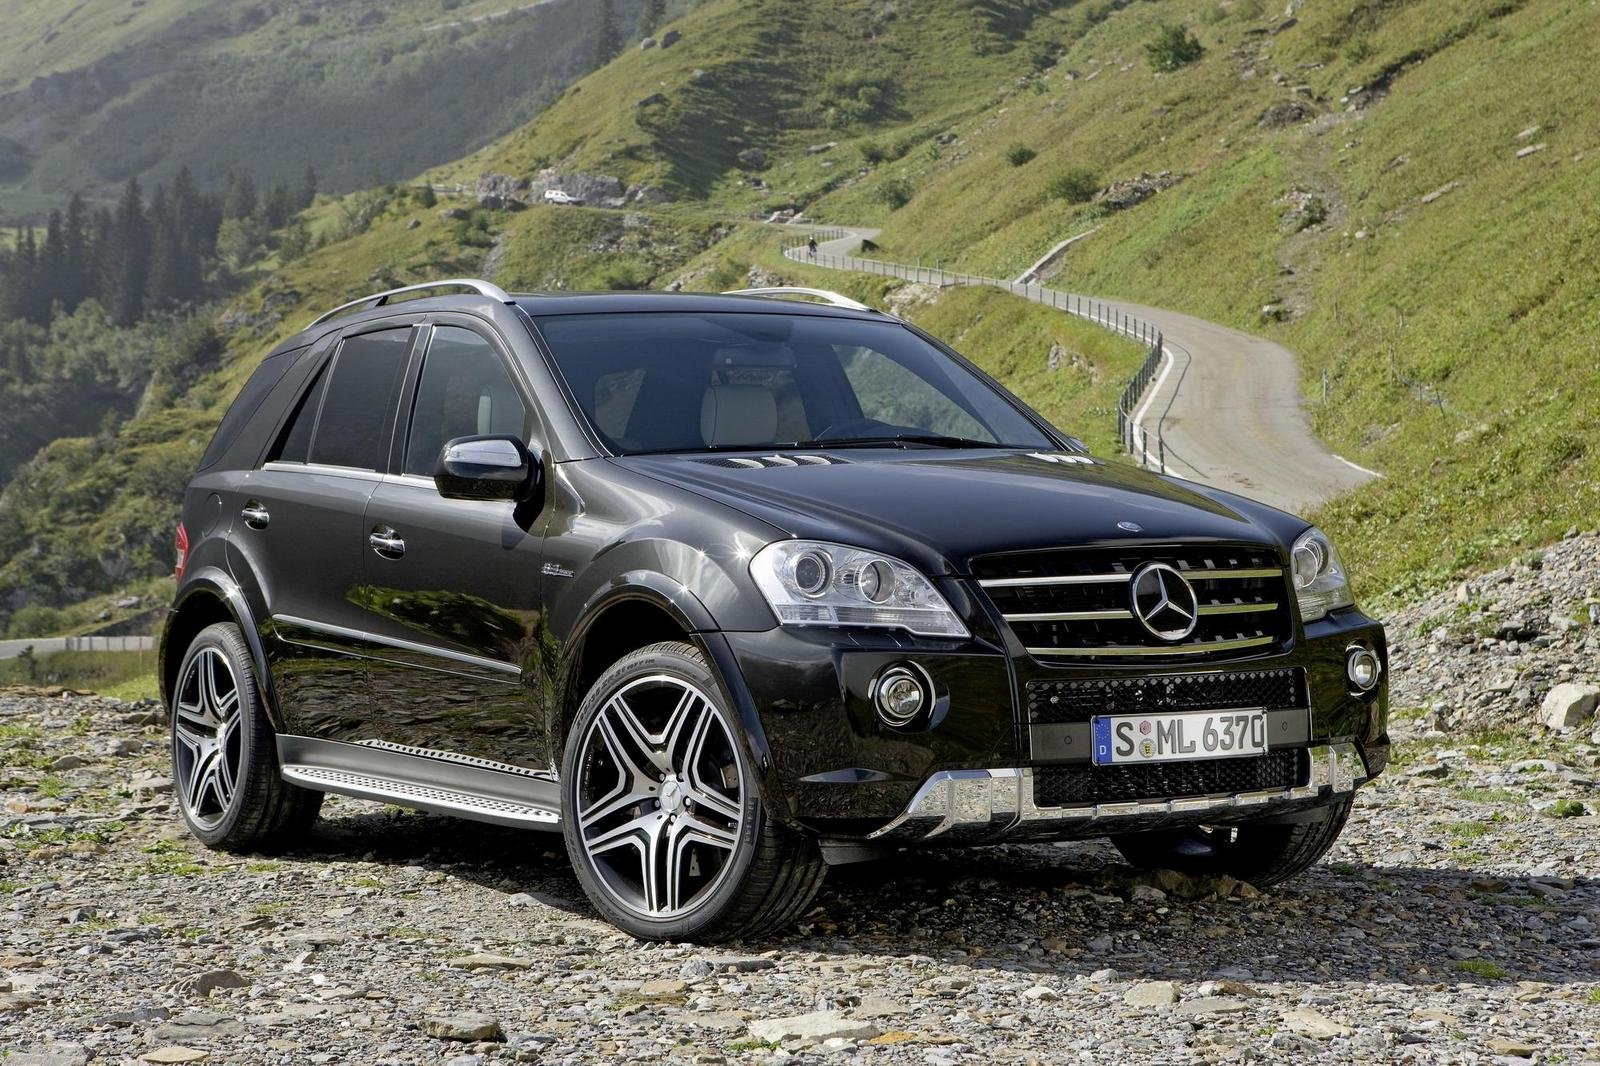 2009 mercedes ml 63 amg performance studio review top speed. Black Bedroom Furniture Sets. Home Design Ideas